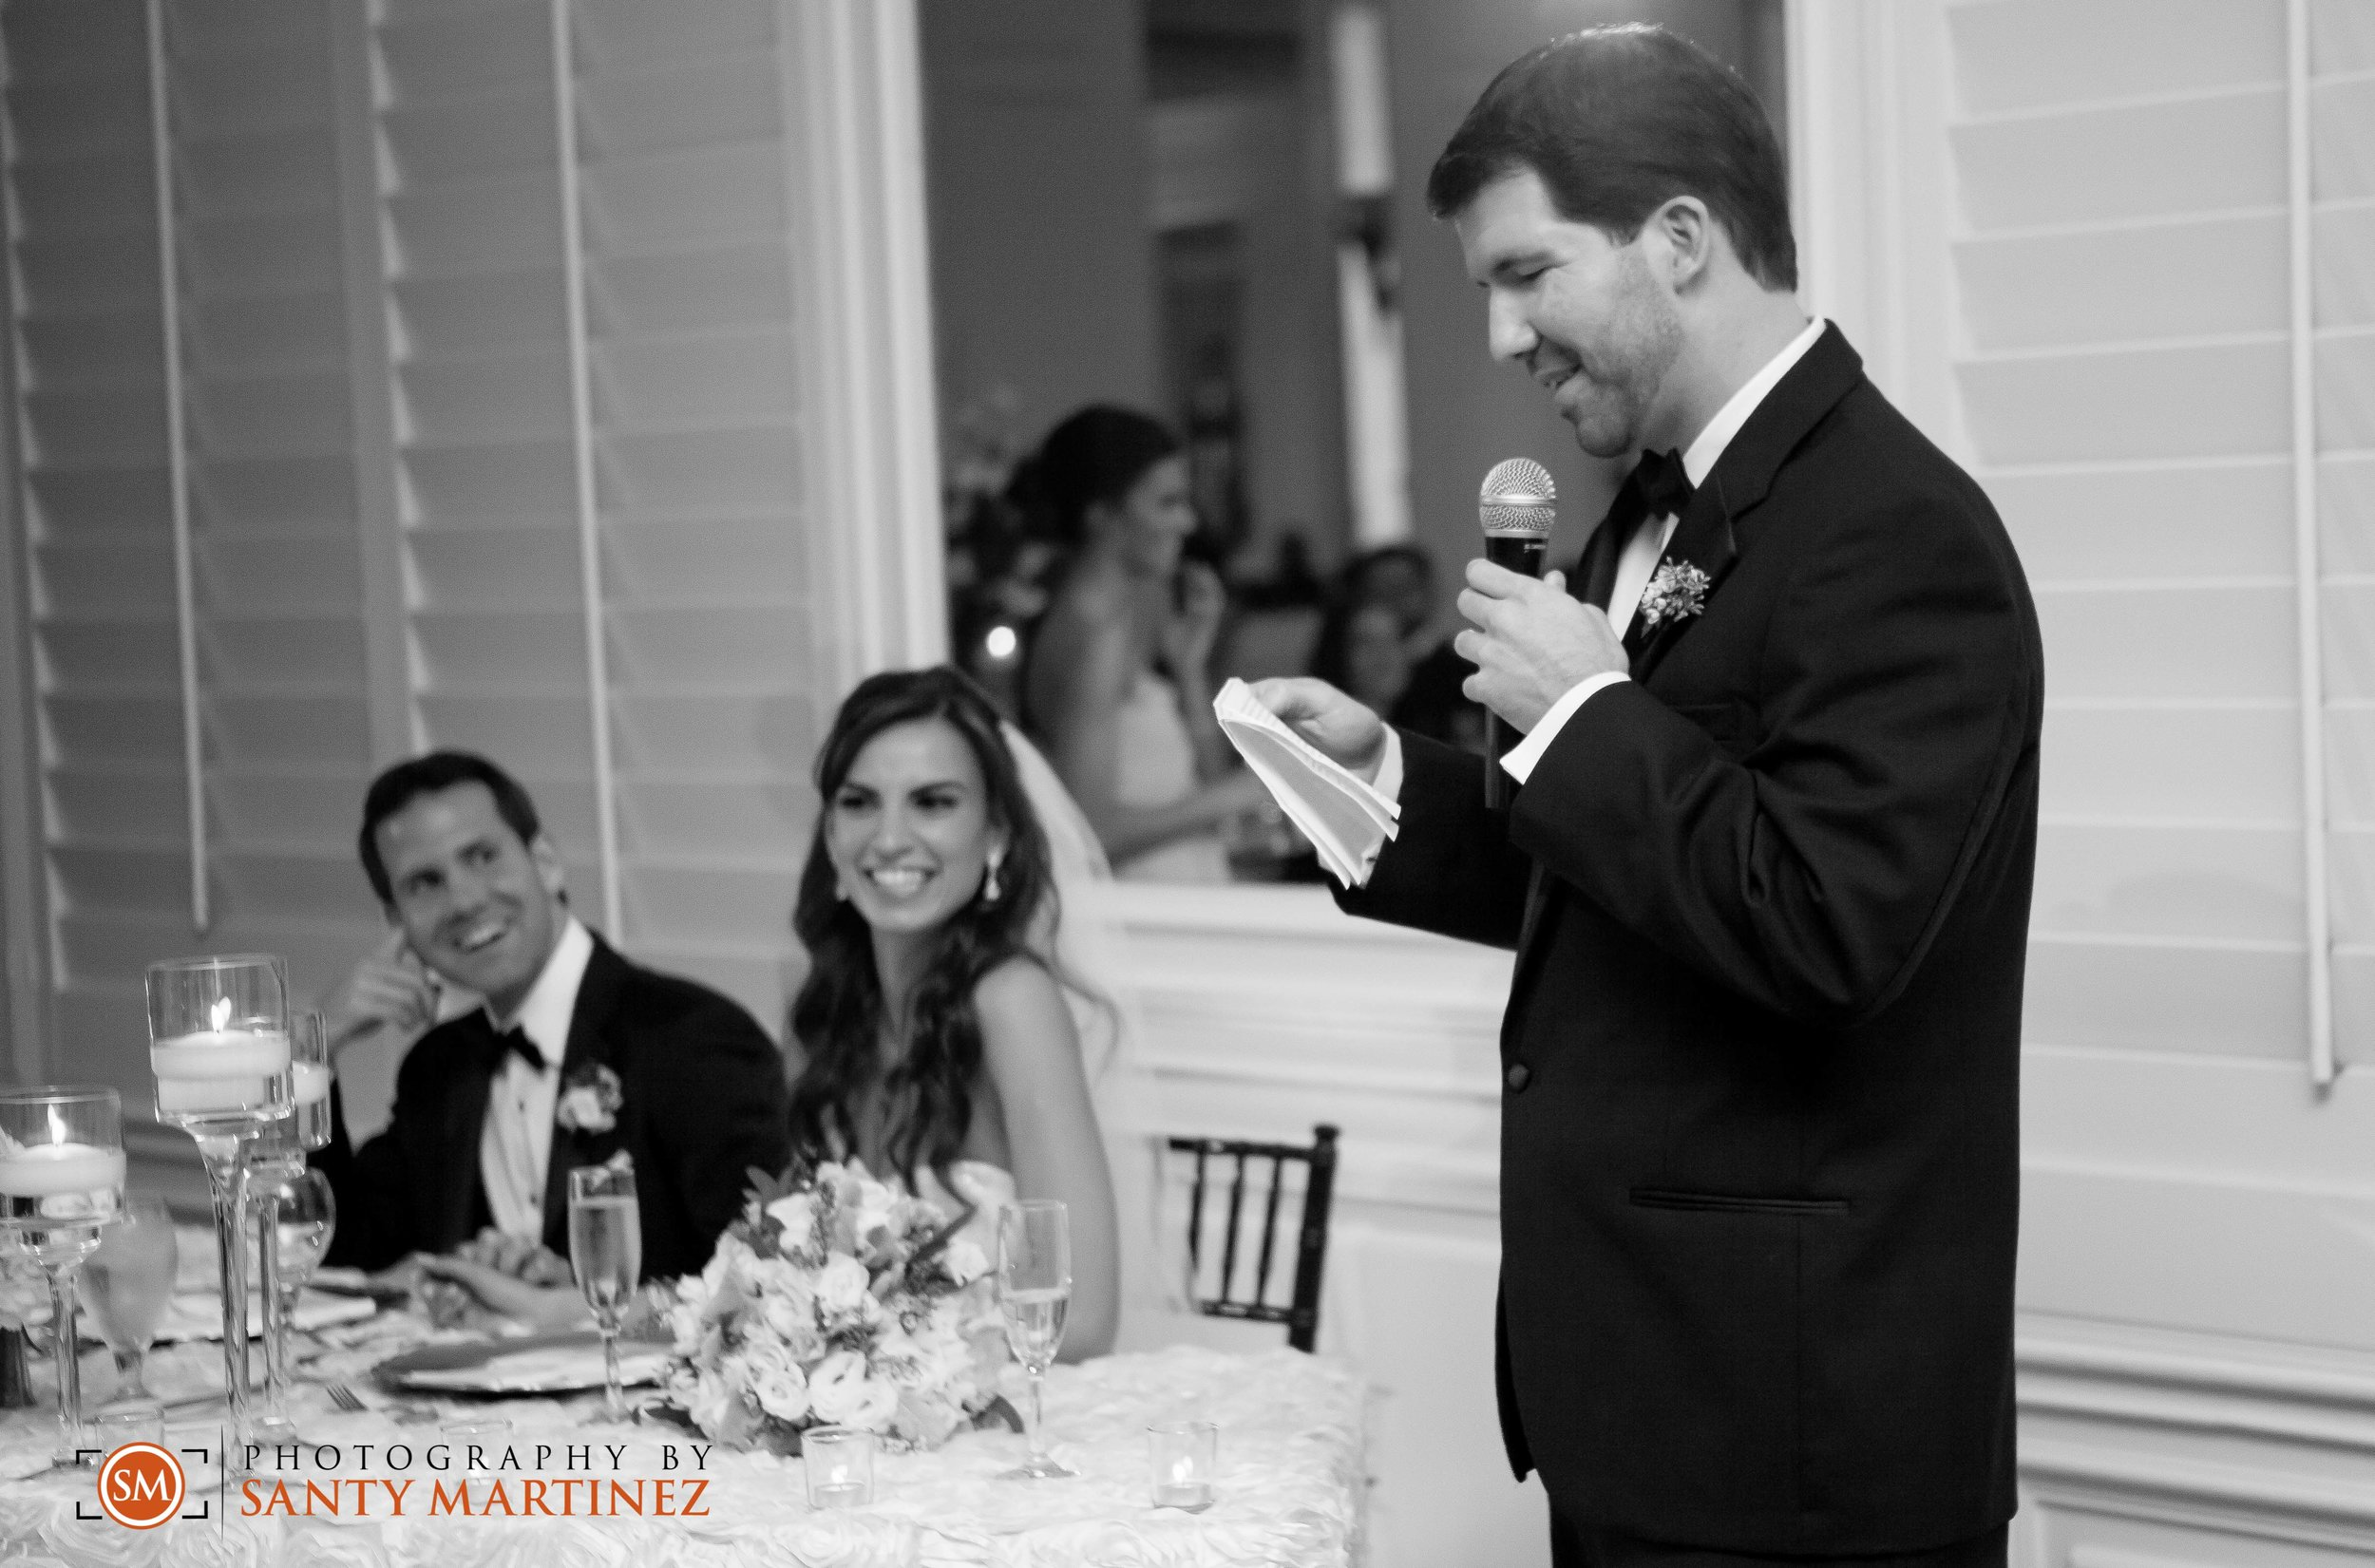 Miami Wedding Photographer - Santy Martinez -37.jpg